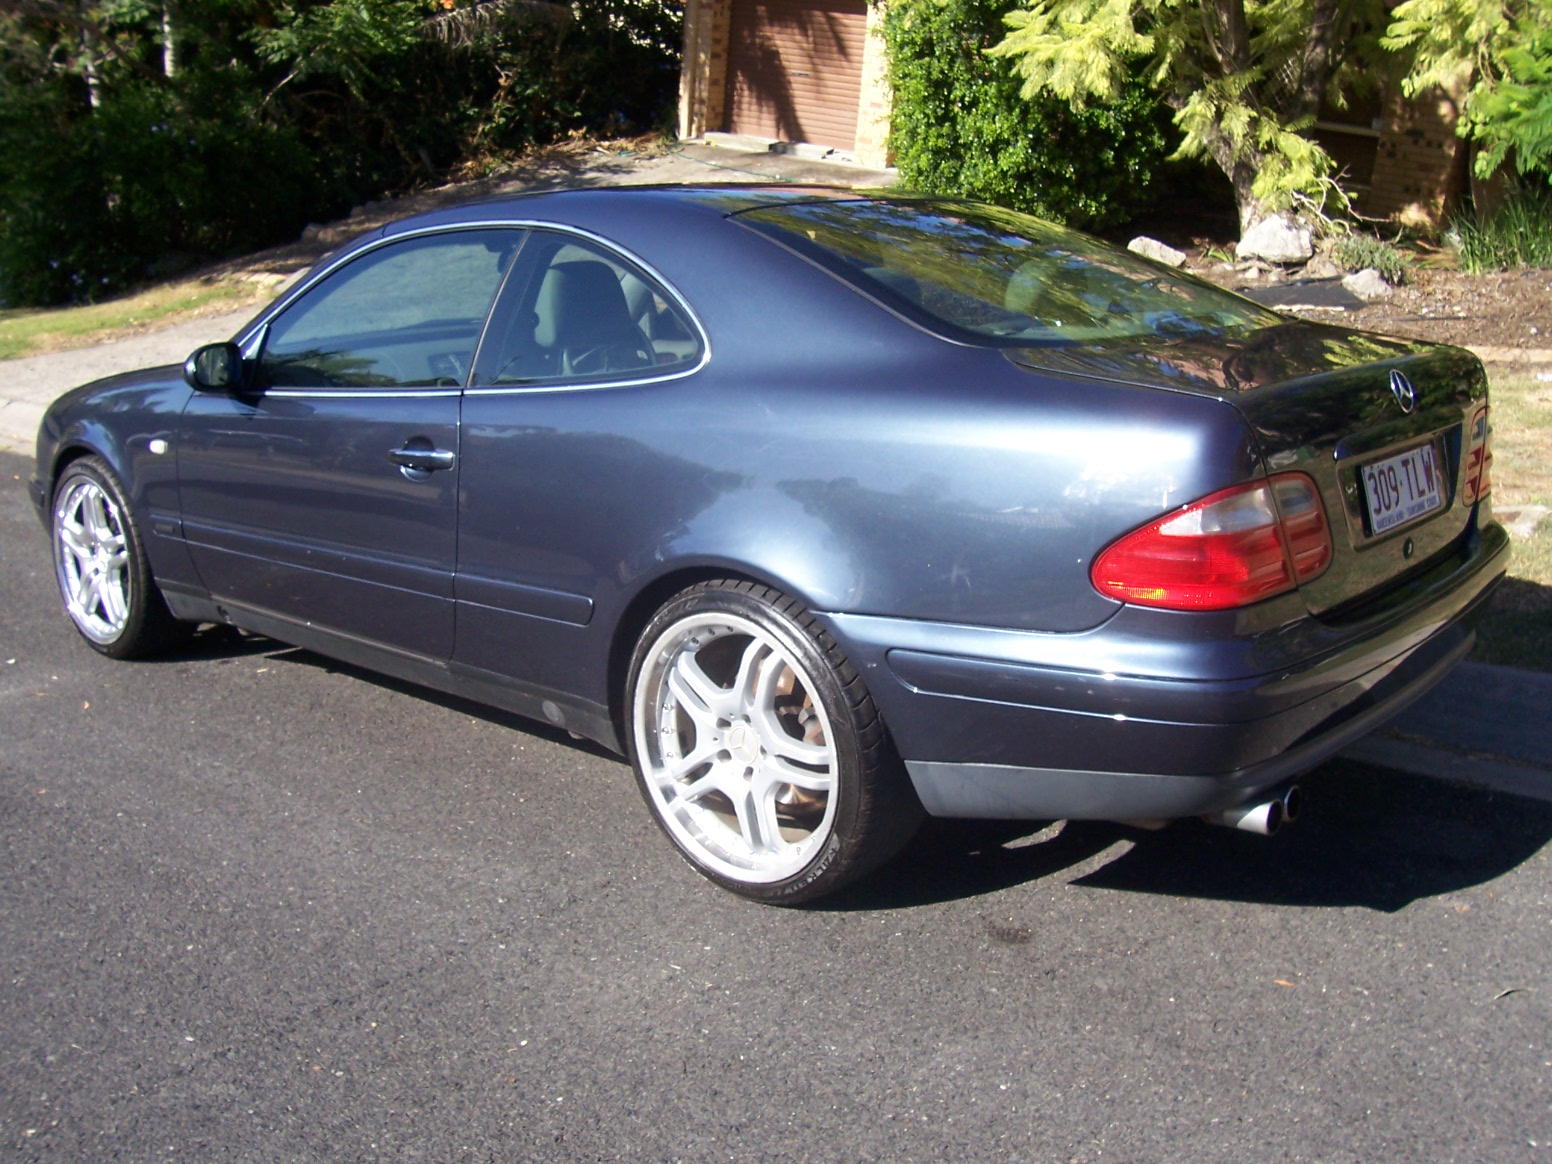 Matthew gray 1999 benz clk320 for sale qld brisbane north for 1999 mercedes benz clk320 for sale